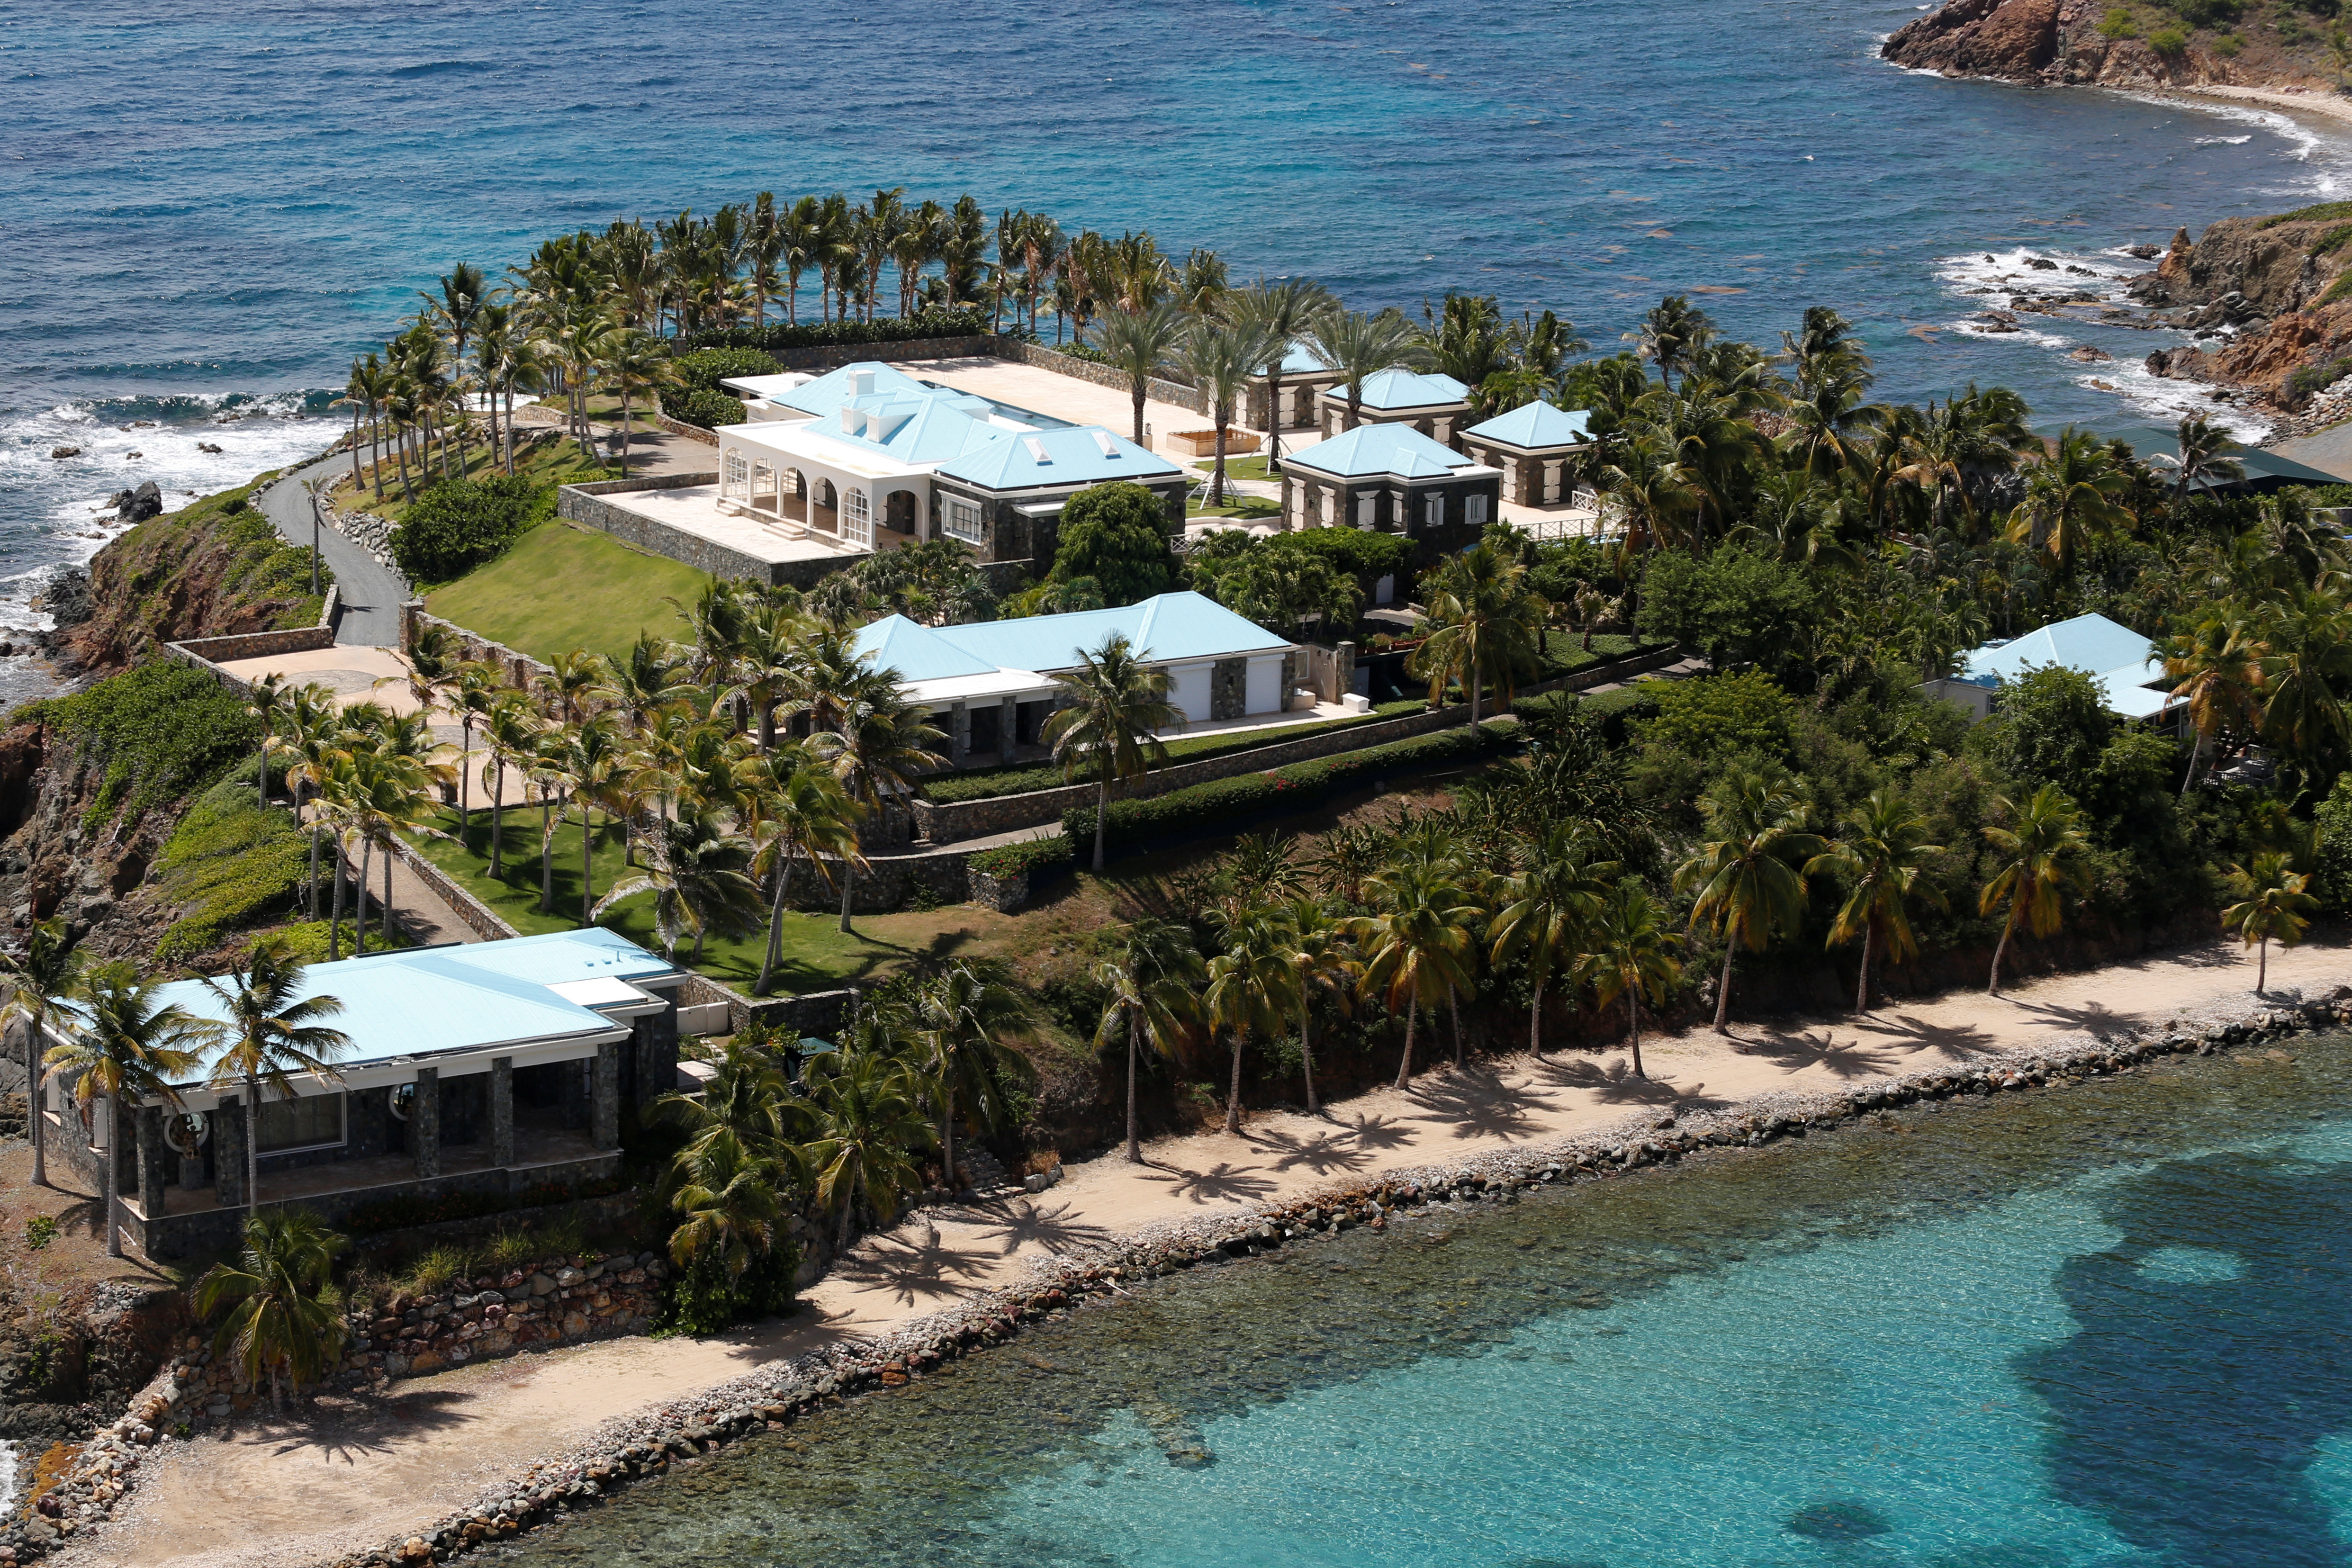 Facilities at Little St. James Island, one of the properties of financier Jeffrey Epstein, are seen in an aerial view, near Charlotte Amalie, St. Thomas, U.S. Virgin Islands July 21, 2019. REUTERS/Marco Bello